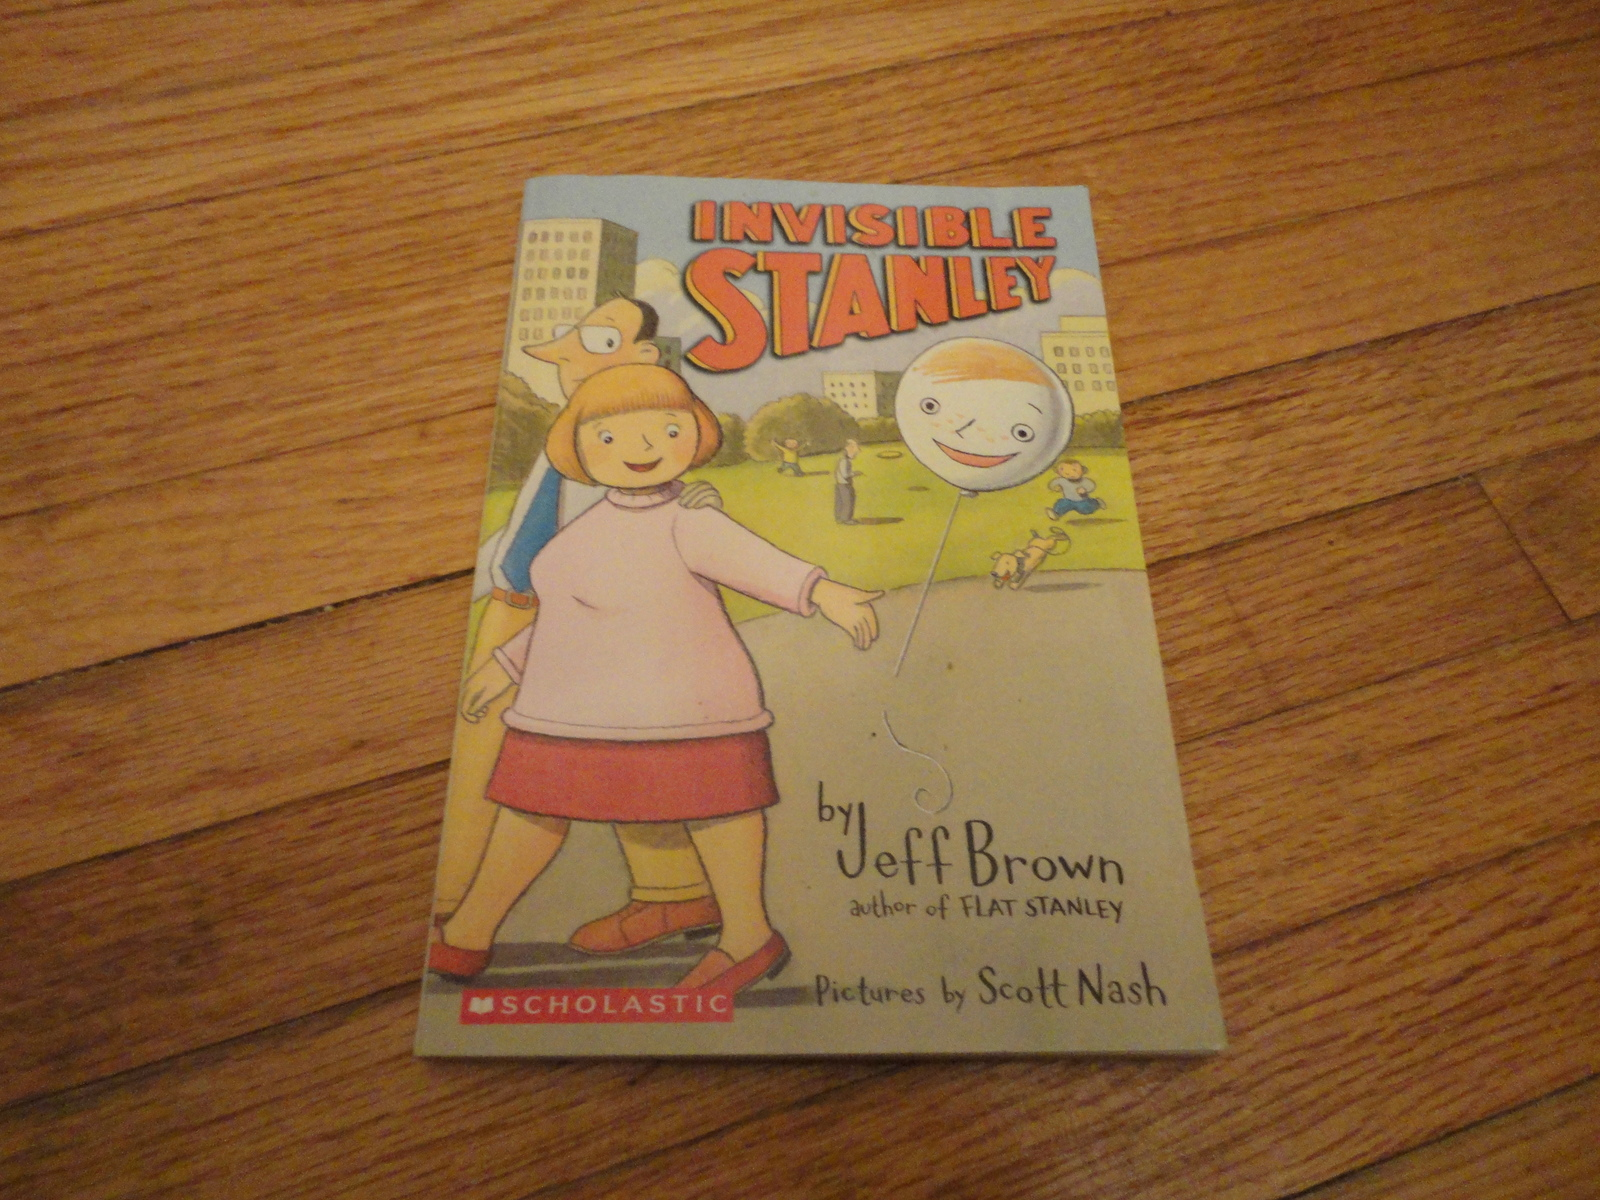 BOOK Jeff Brown 'Invisible Stanley' PB Scholastic Scott Nash Flat Stanley